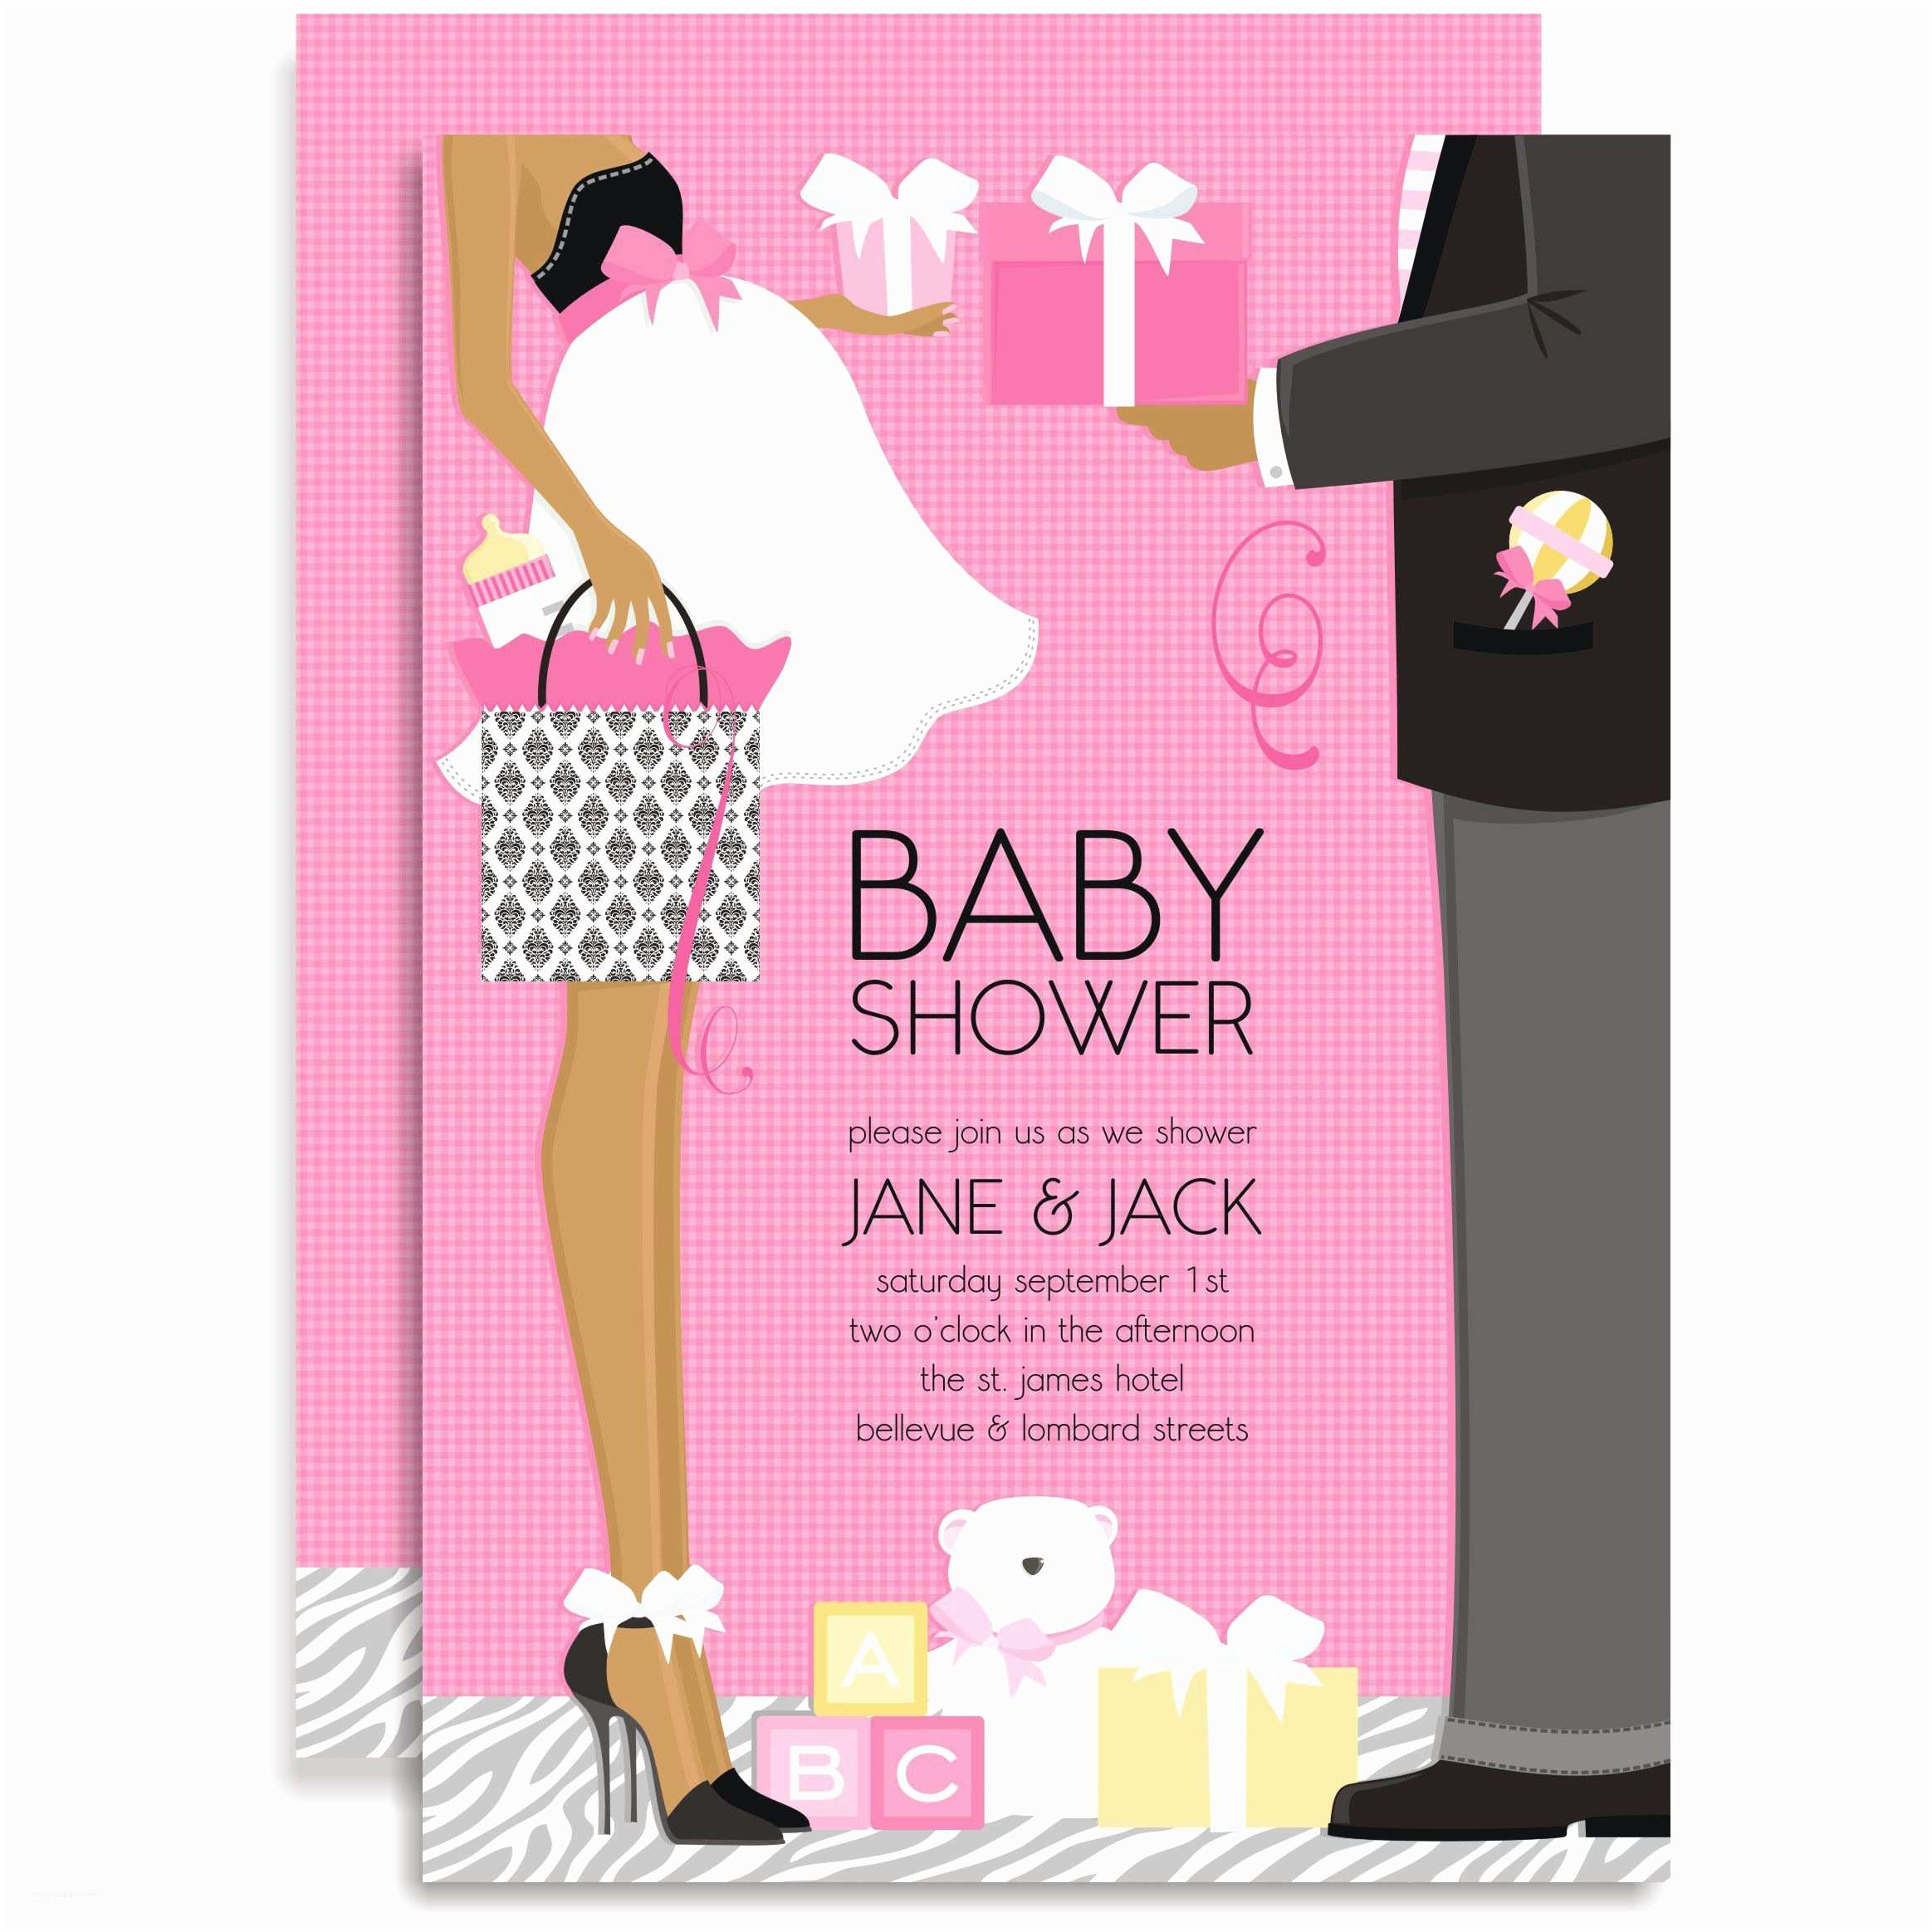 Couple Baby Shower Invitations Couples Wedding Shower Invitations Couples Bridal Shower